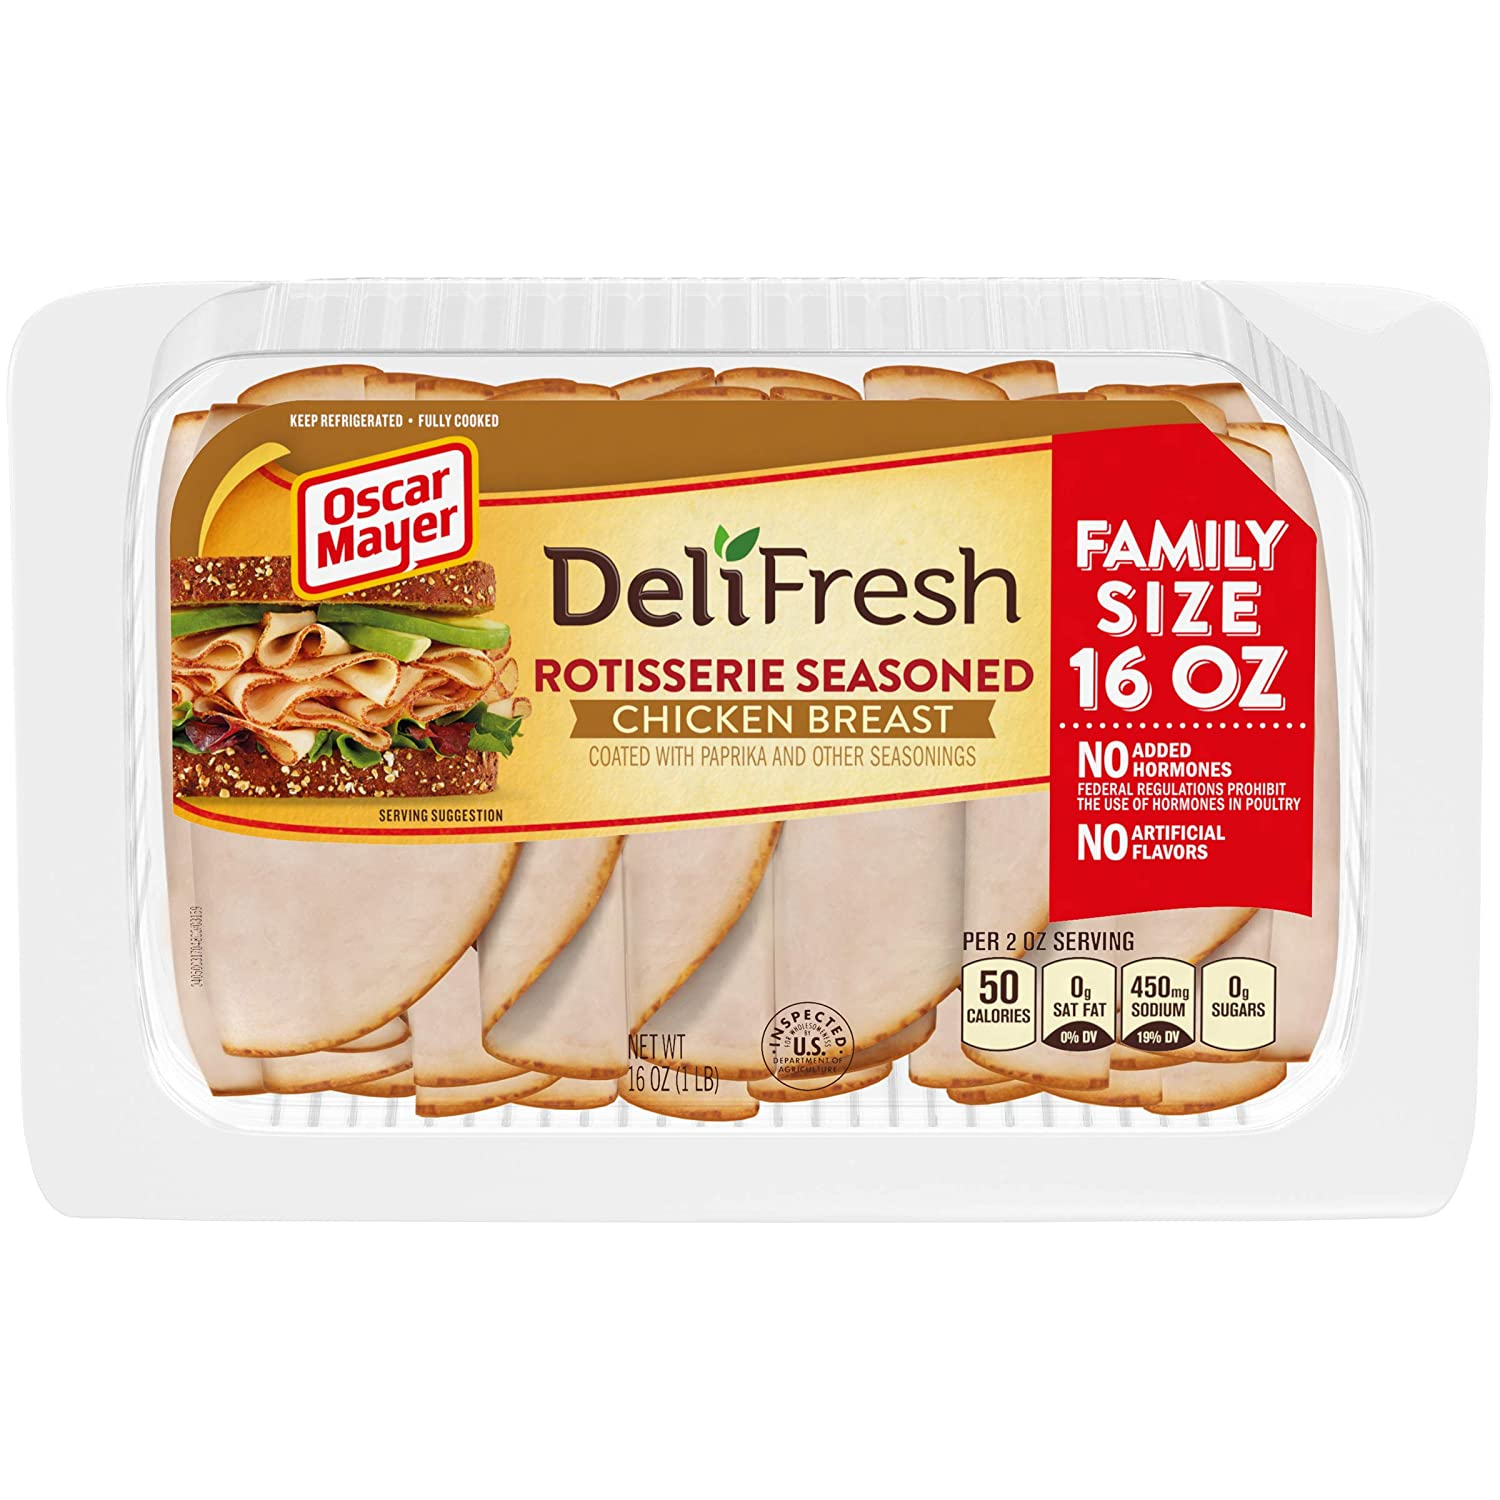 Oscar Mayer Deli Fresh Rotisserie Seasoned Chicken Breast Lunch Meat (16 oz Package)